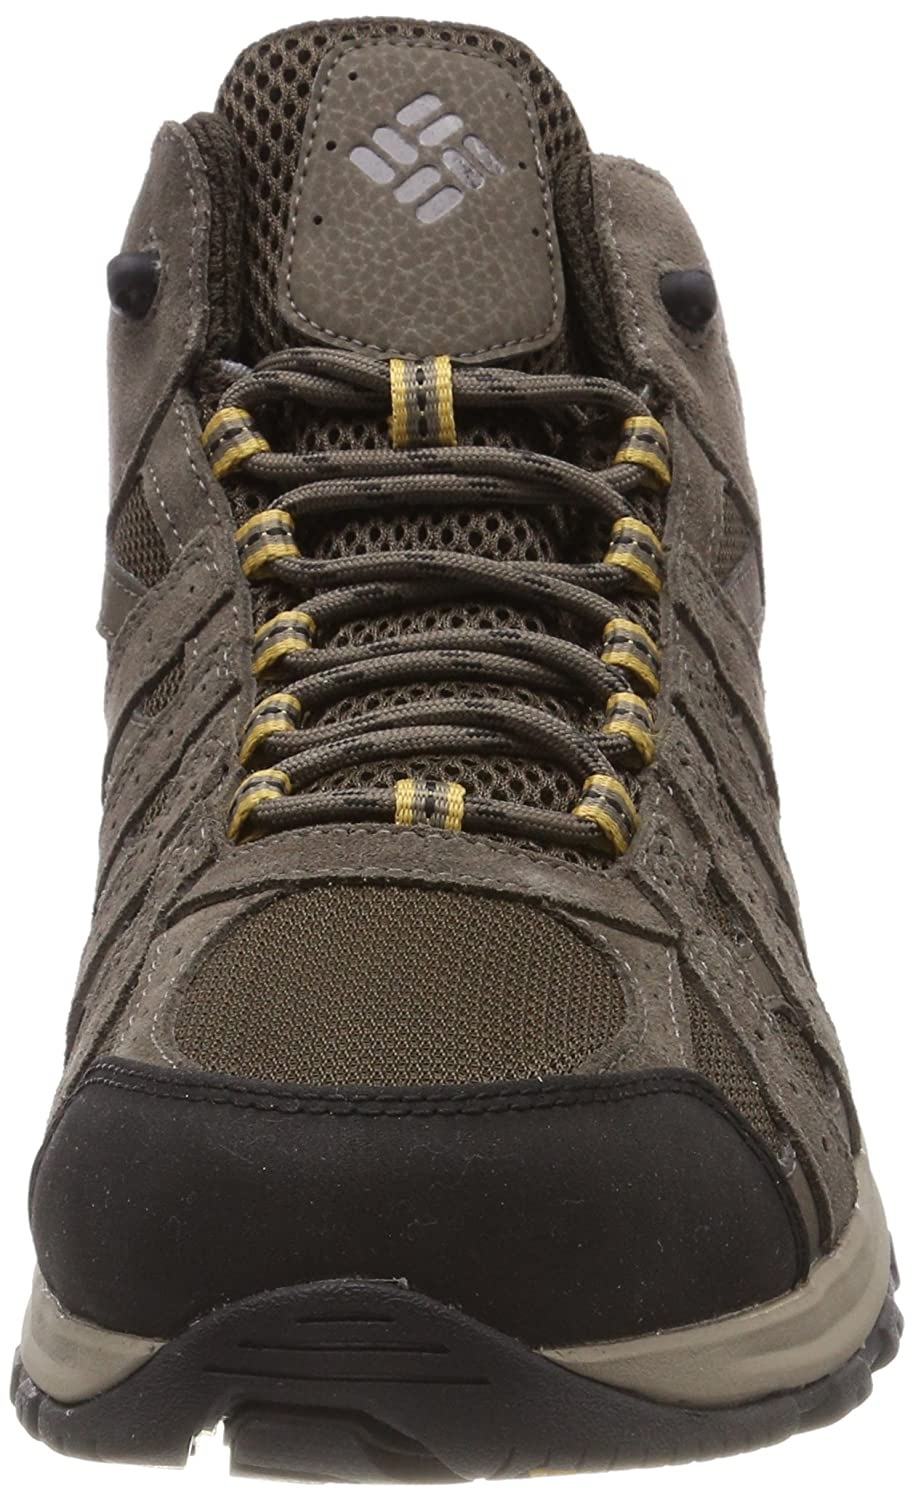 Canyon Mid High Columbia De Point Zapatos Rise Waterproof 6qzvPa